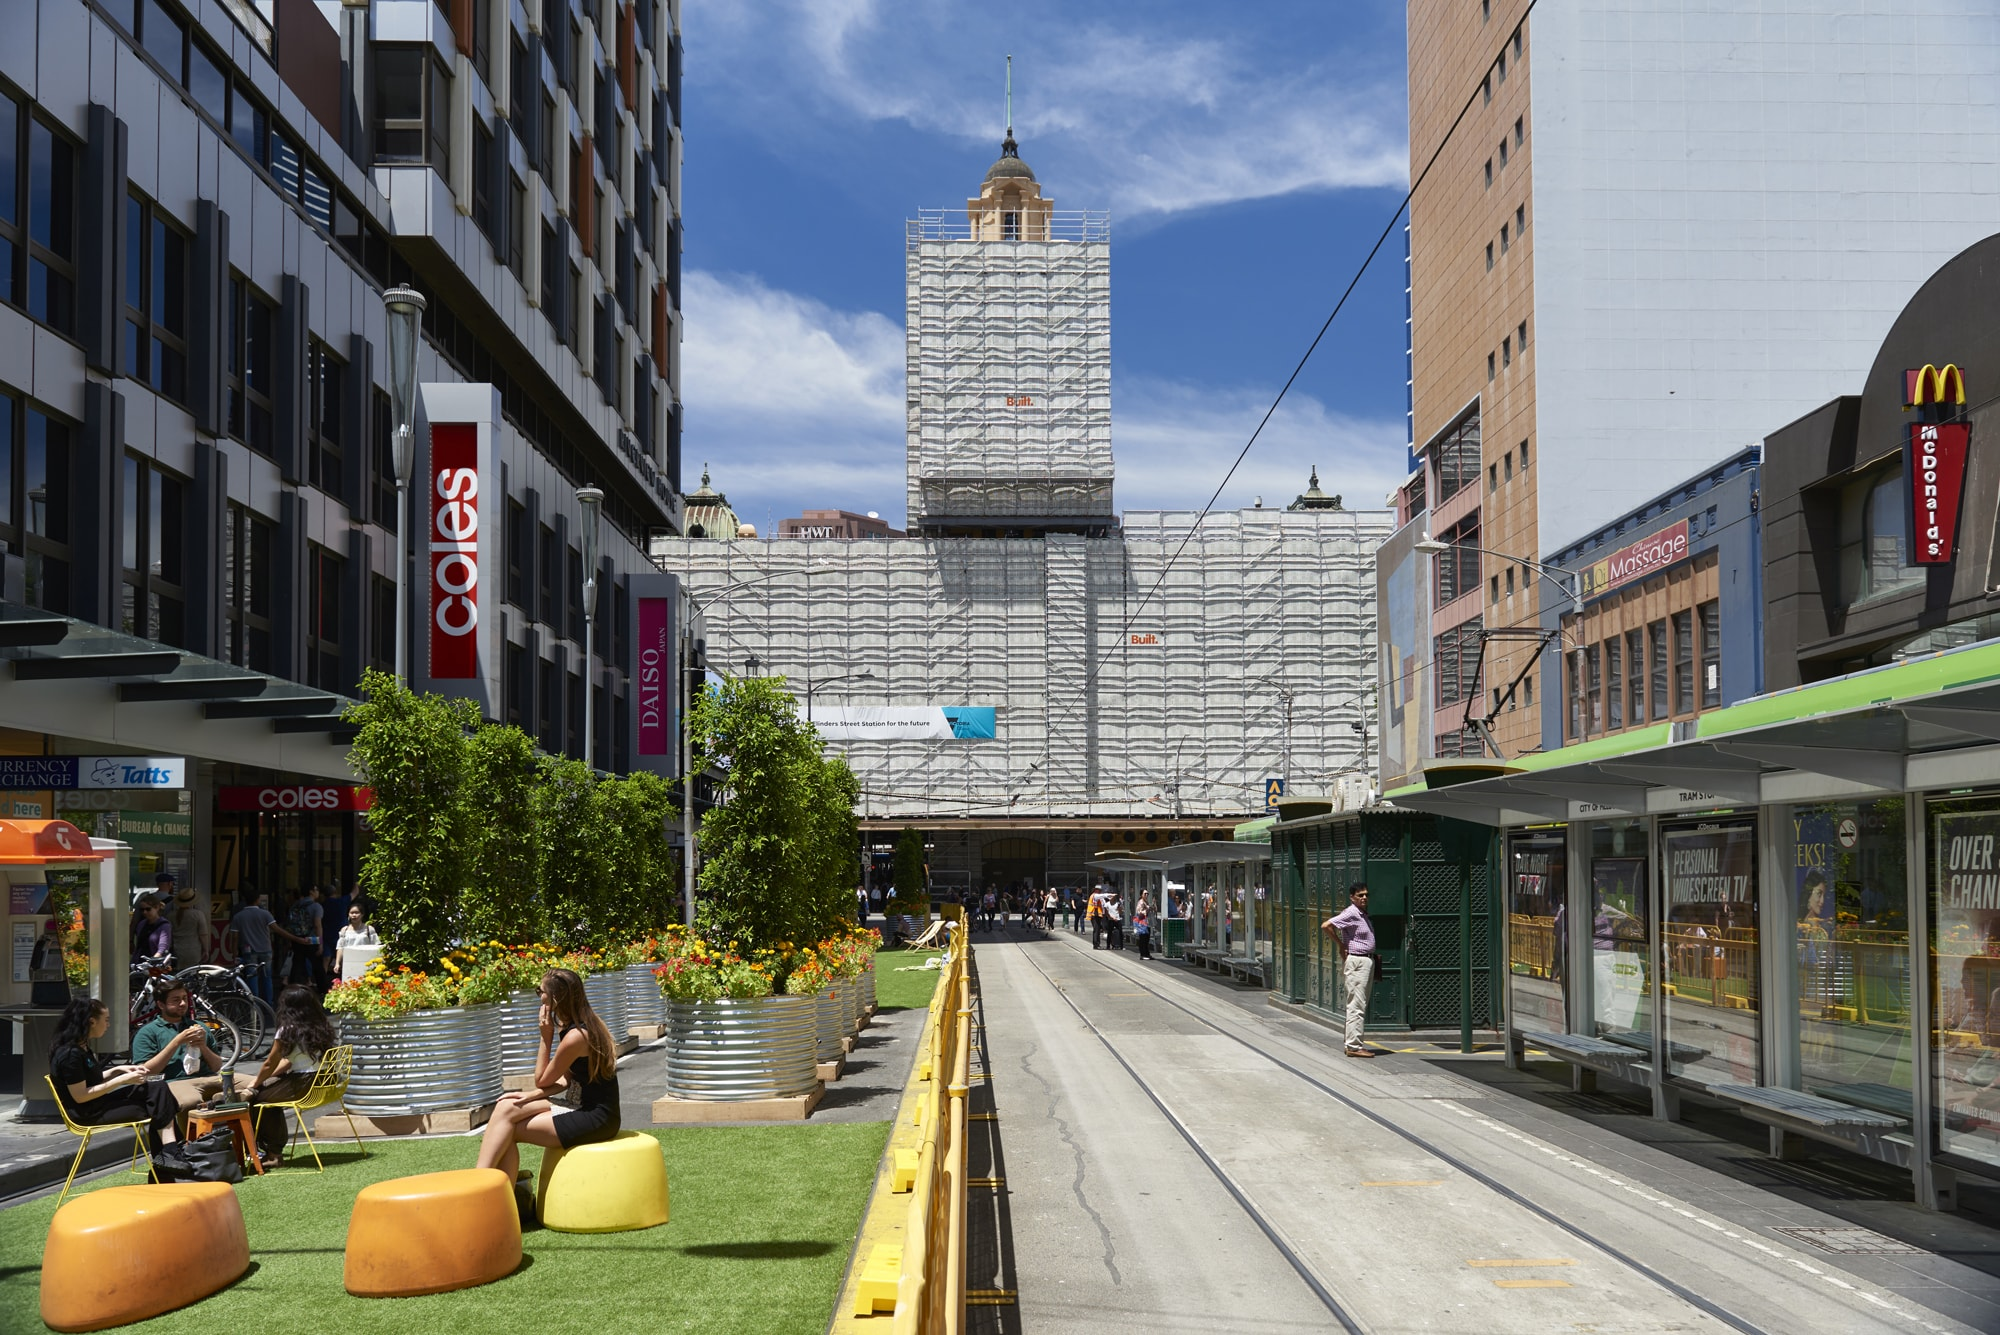 The Elizabeth Street Pop-Up Park is a Minimum Viable Place that offers a taste of what's to come.